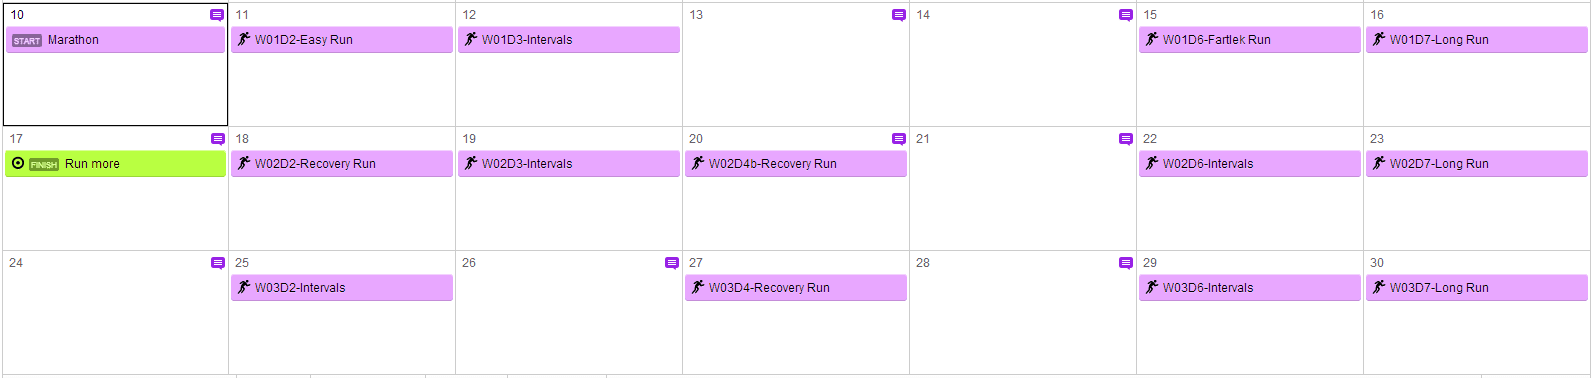 Garmin Connect this month